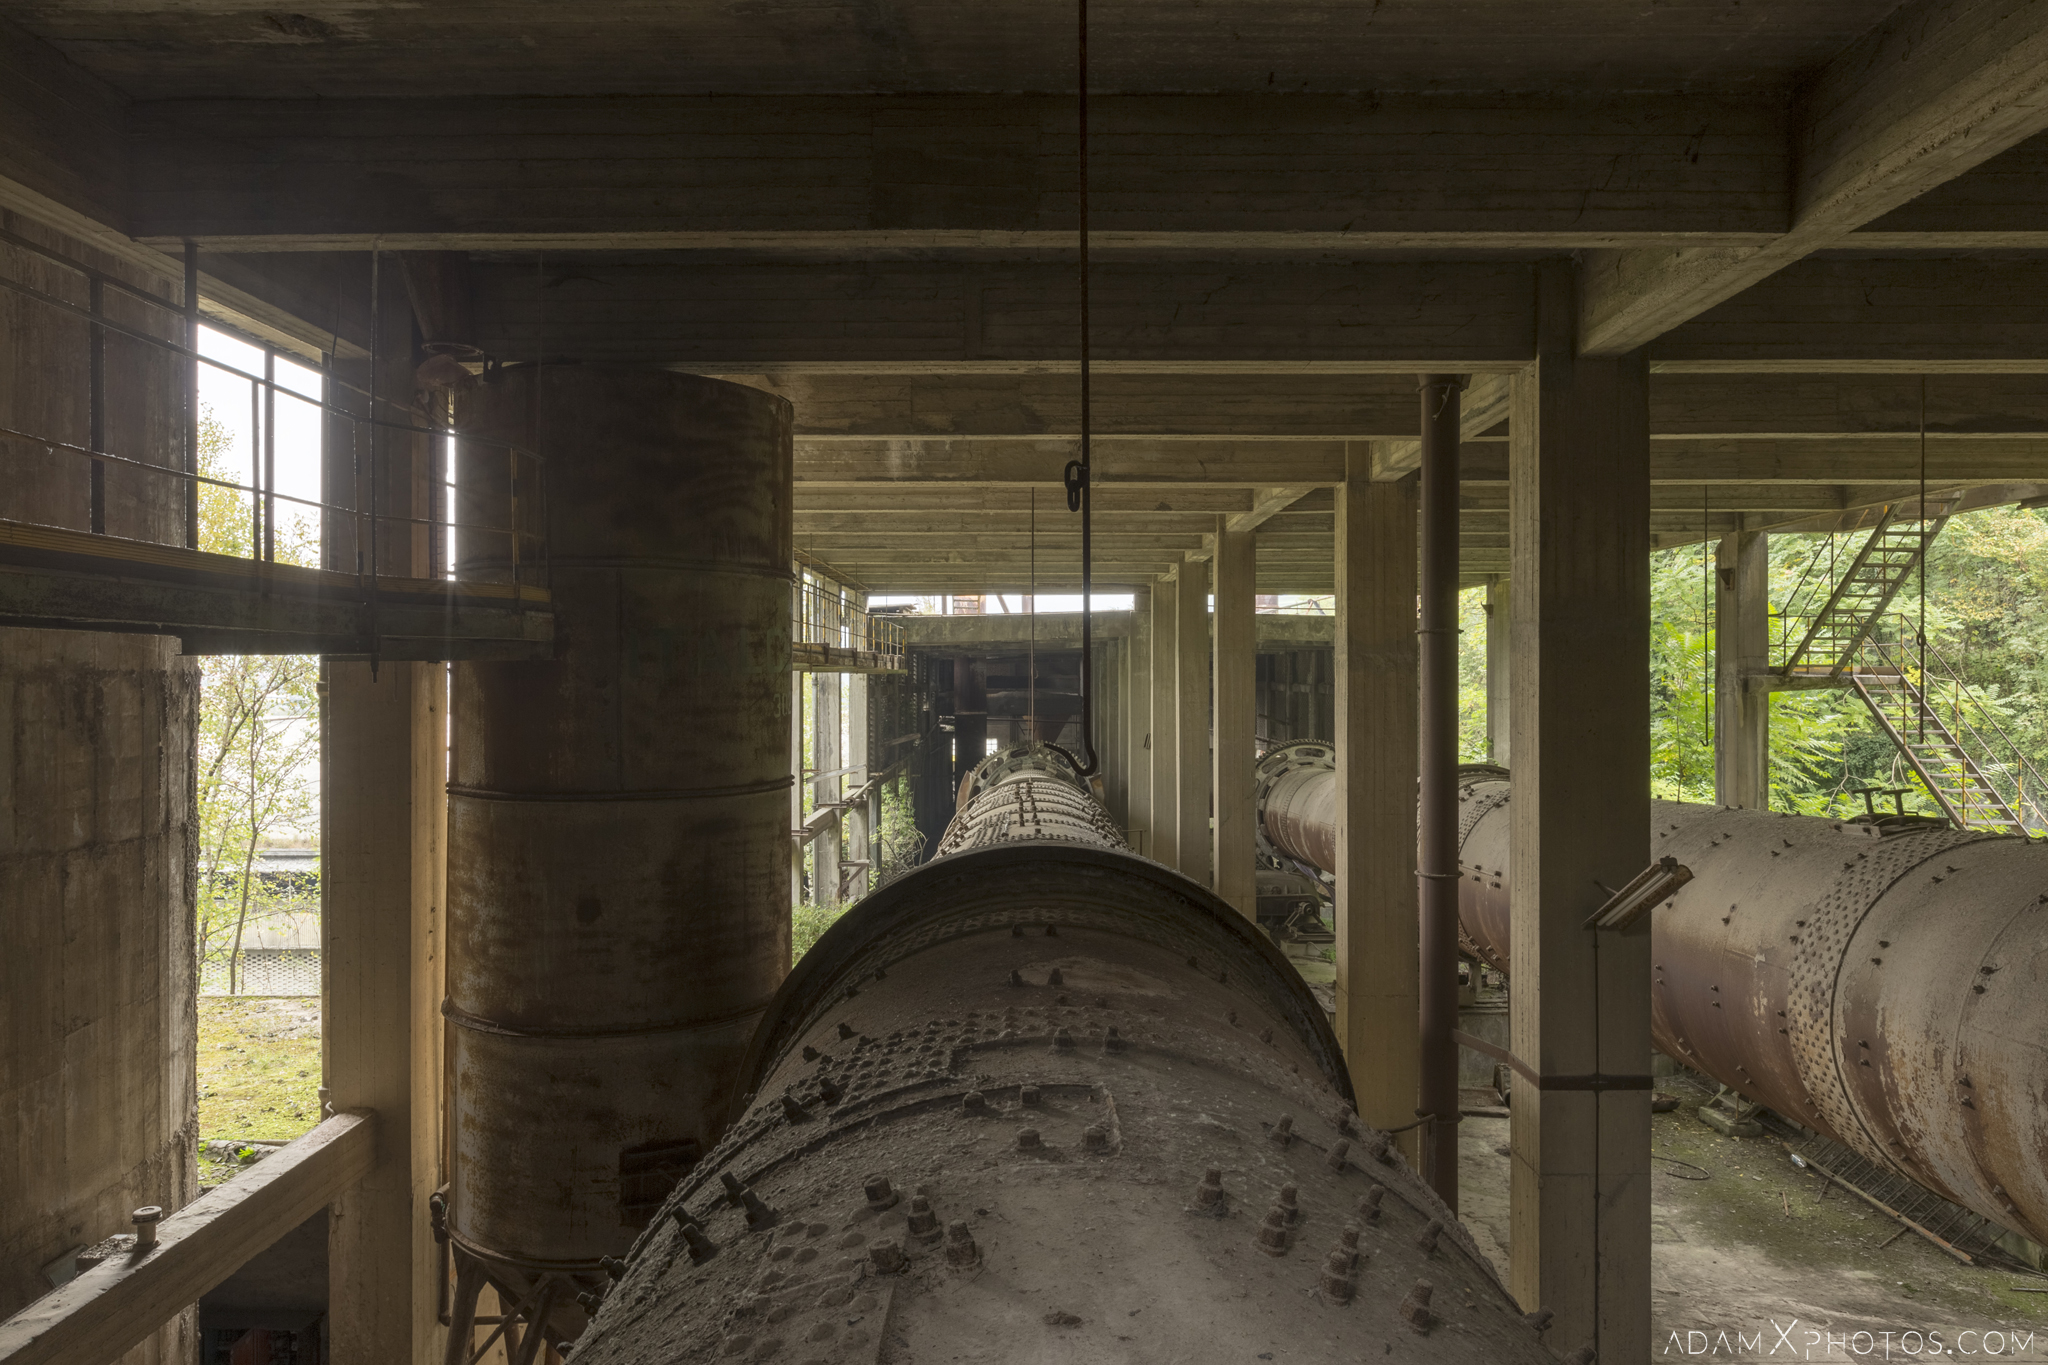 mixing cylinders pipes huge Circle Industry Cement factory industrial industy Adam X Urban Exploration Italy Italia Access 2016 Abandoned decay lost forgotten derelict location creepy haunting eerie